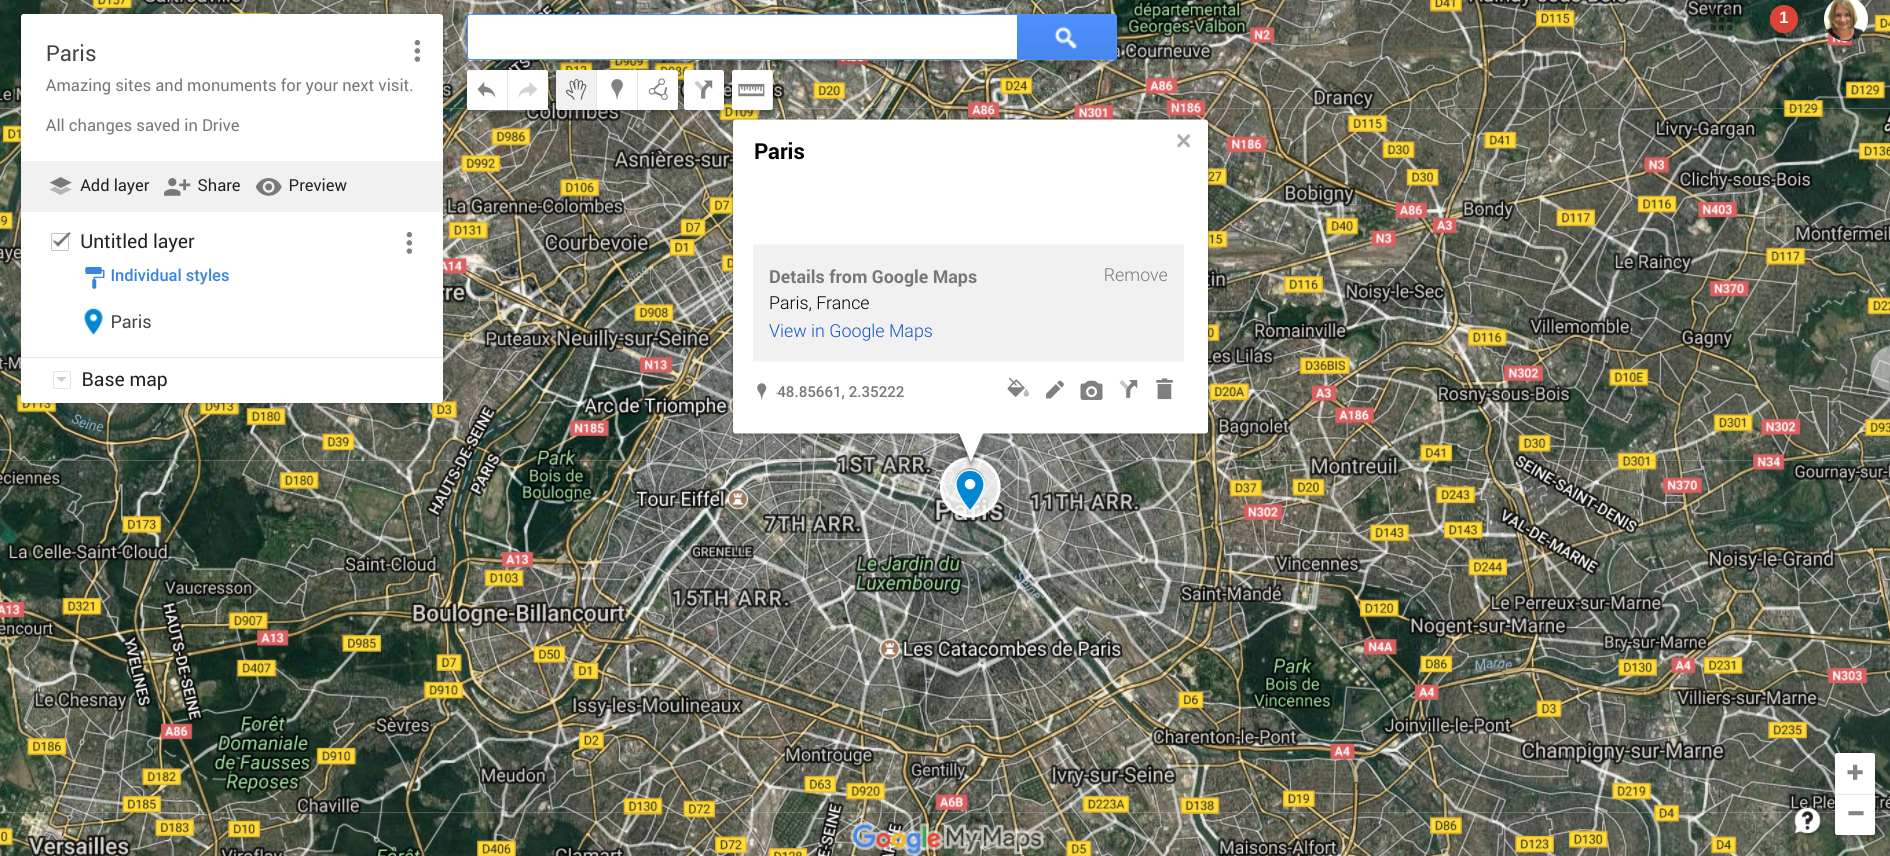 satellite map showing the center of Paris with guides and layers on the left.